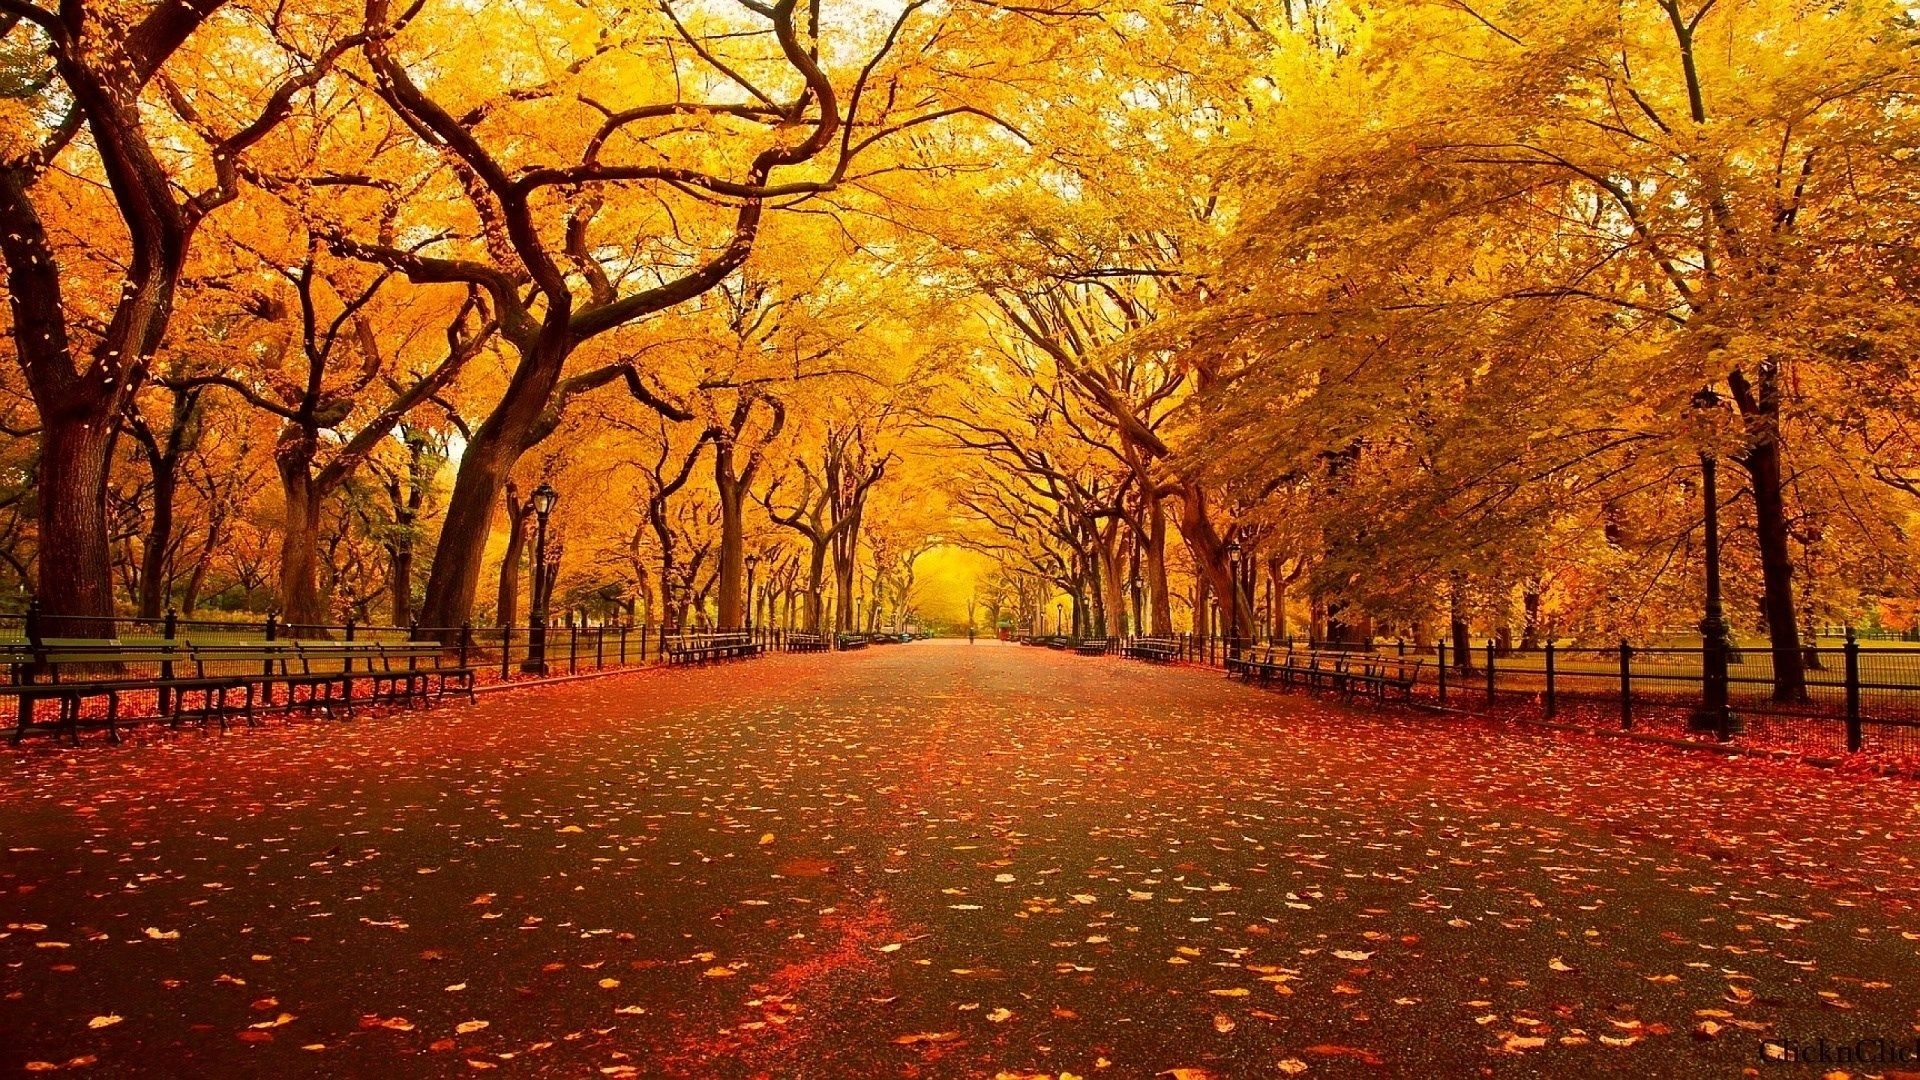 10 New Fall Screen Savers Free FULL HD 1920×1080 For PC Desktop